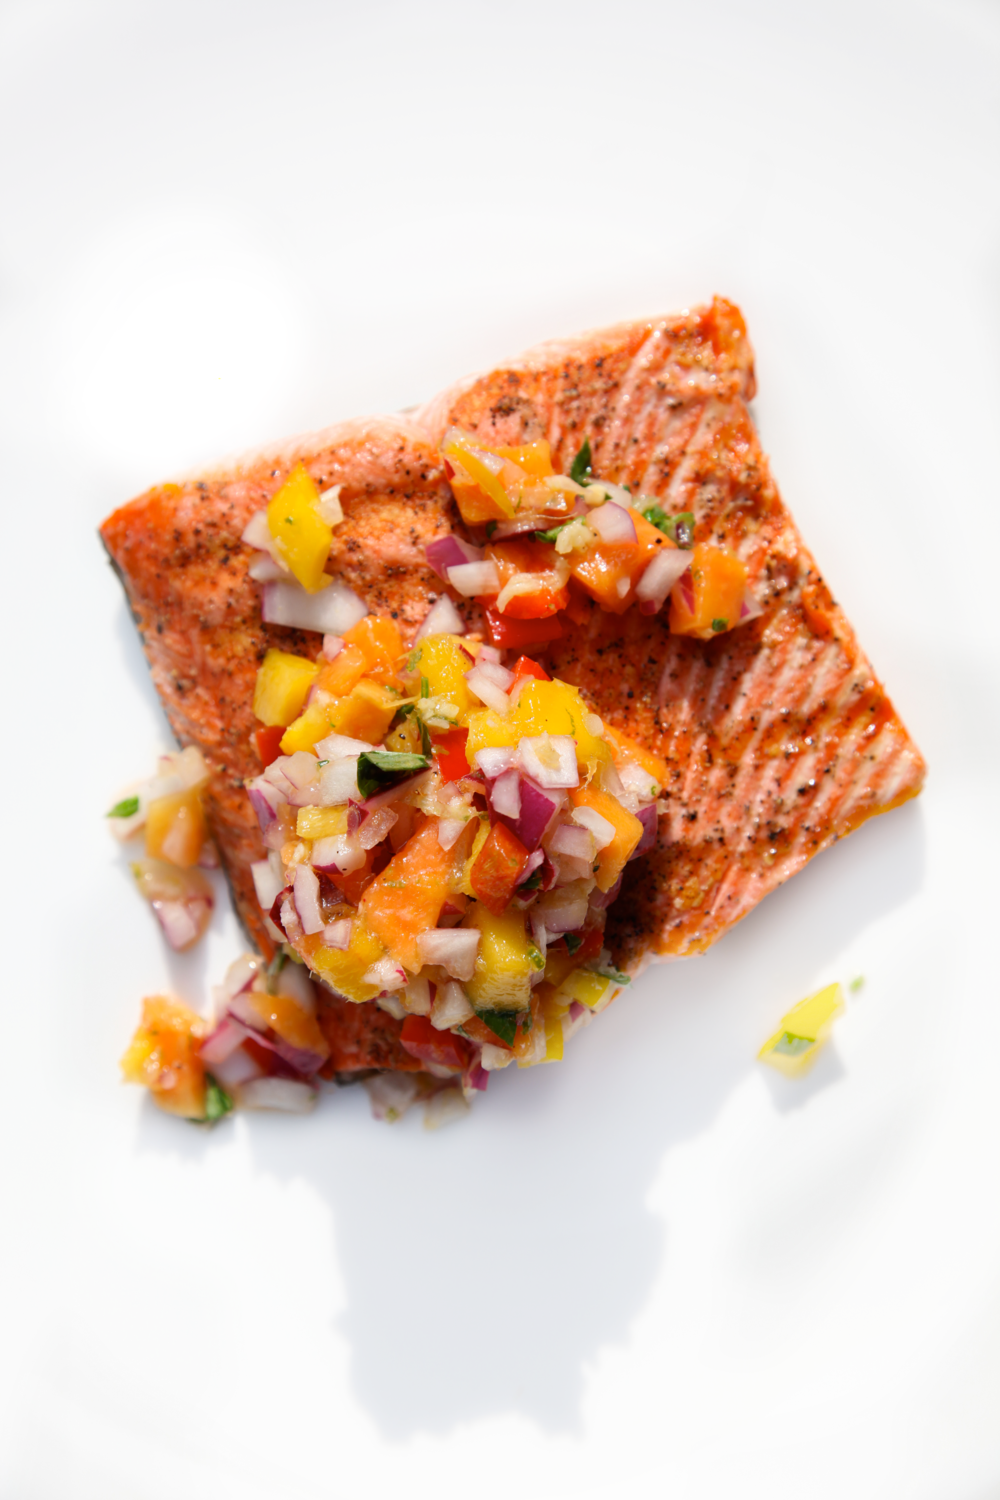 Grilled Salmon Fillets with Papaya Salsa 2